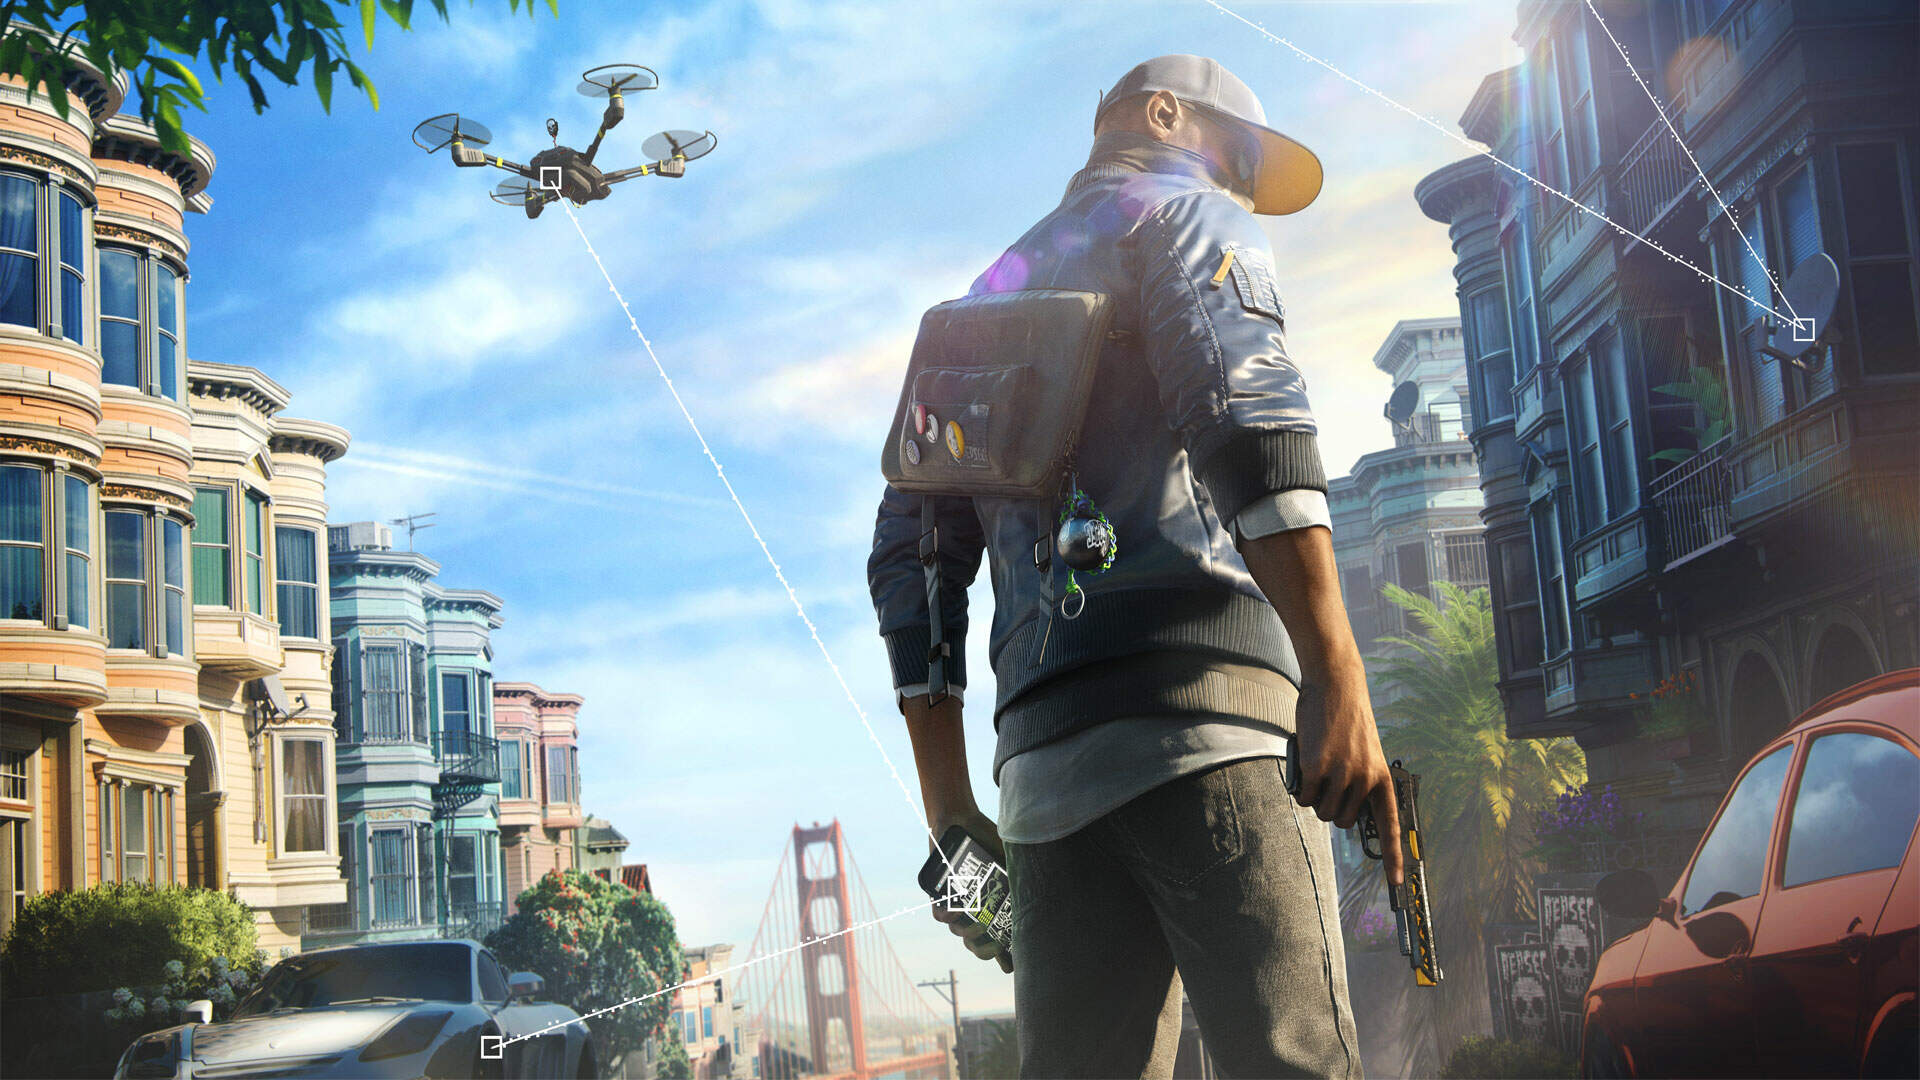 Watch Dogs 3 Set in London, According to New Report